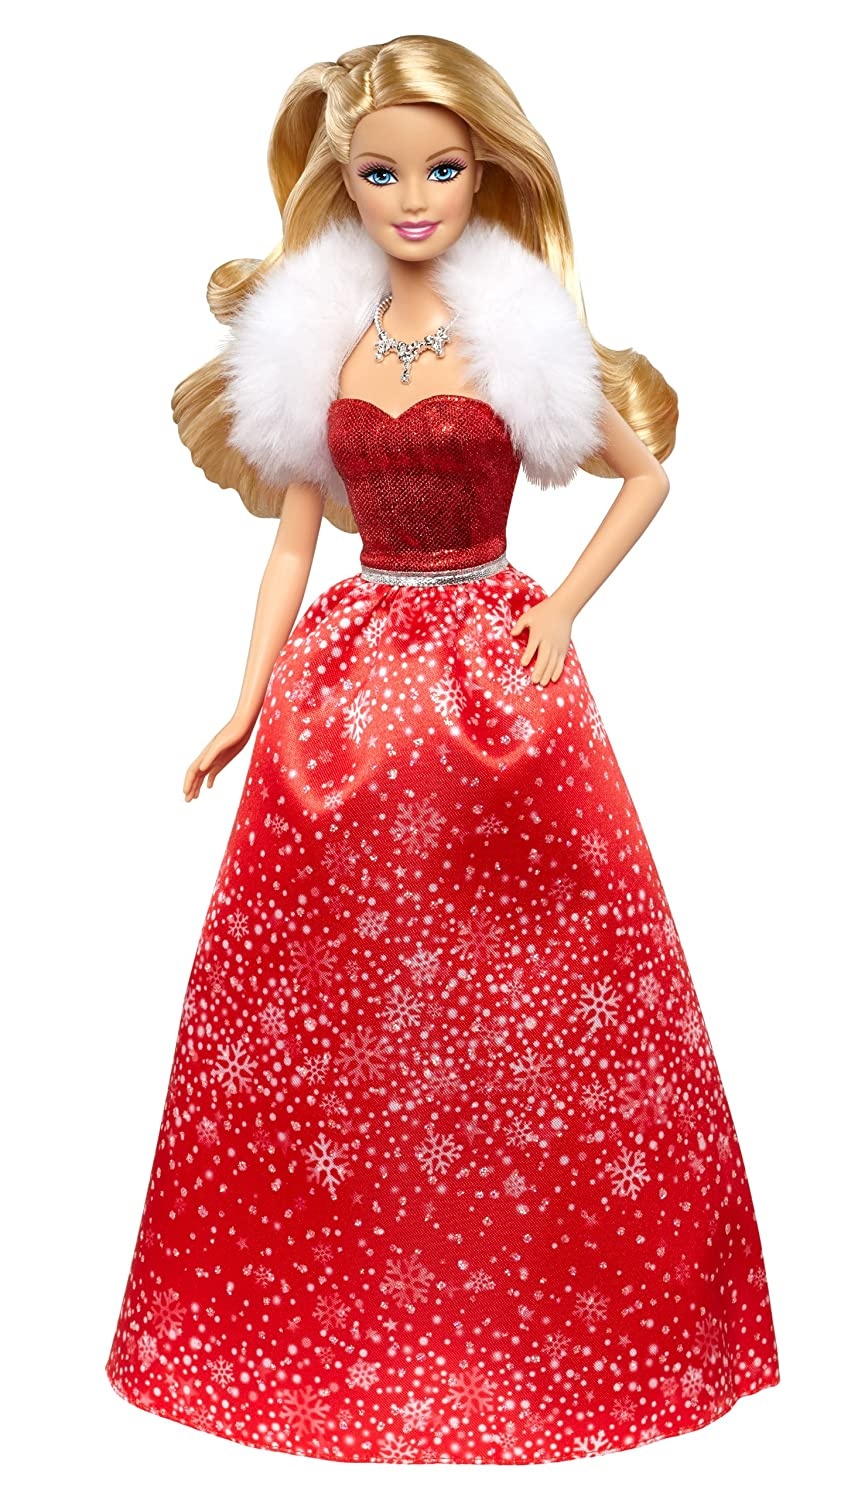 Barbie 2014 Holiday Doll